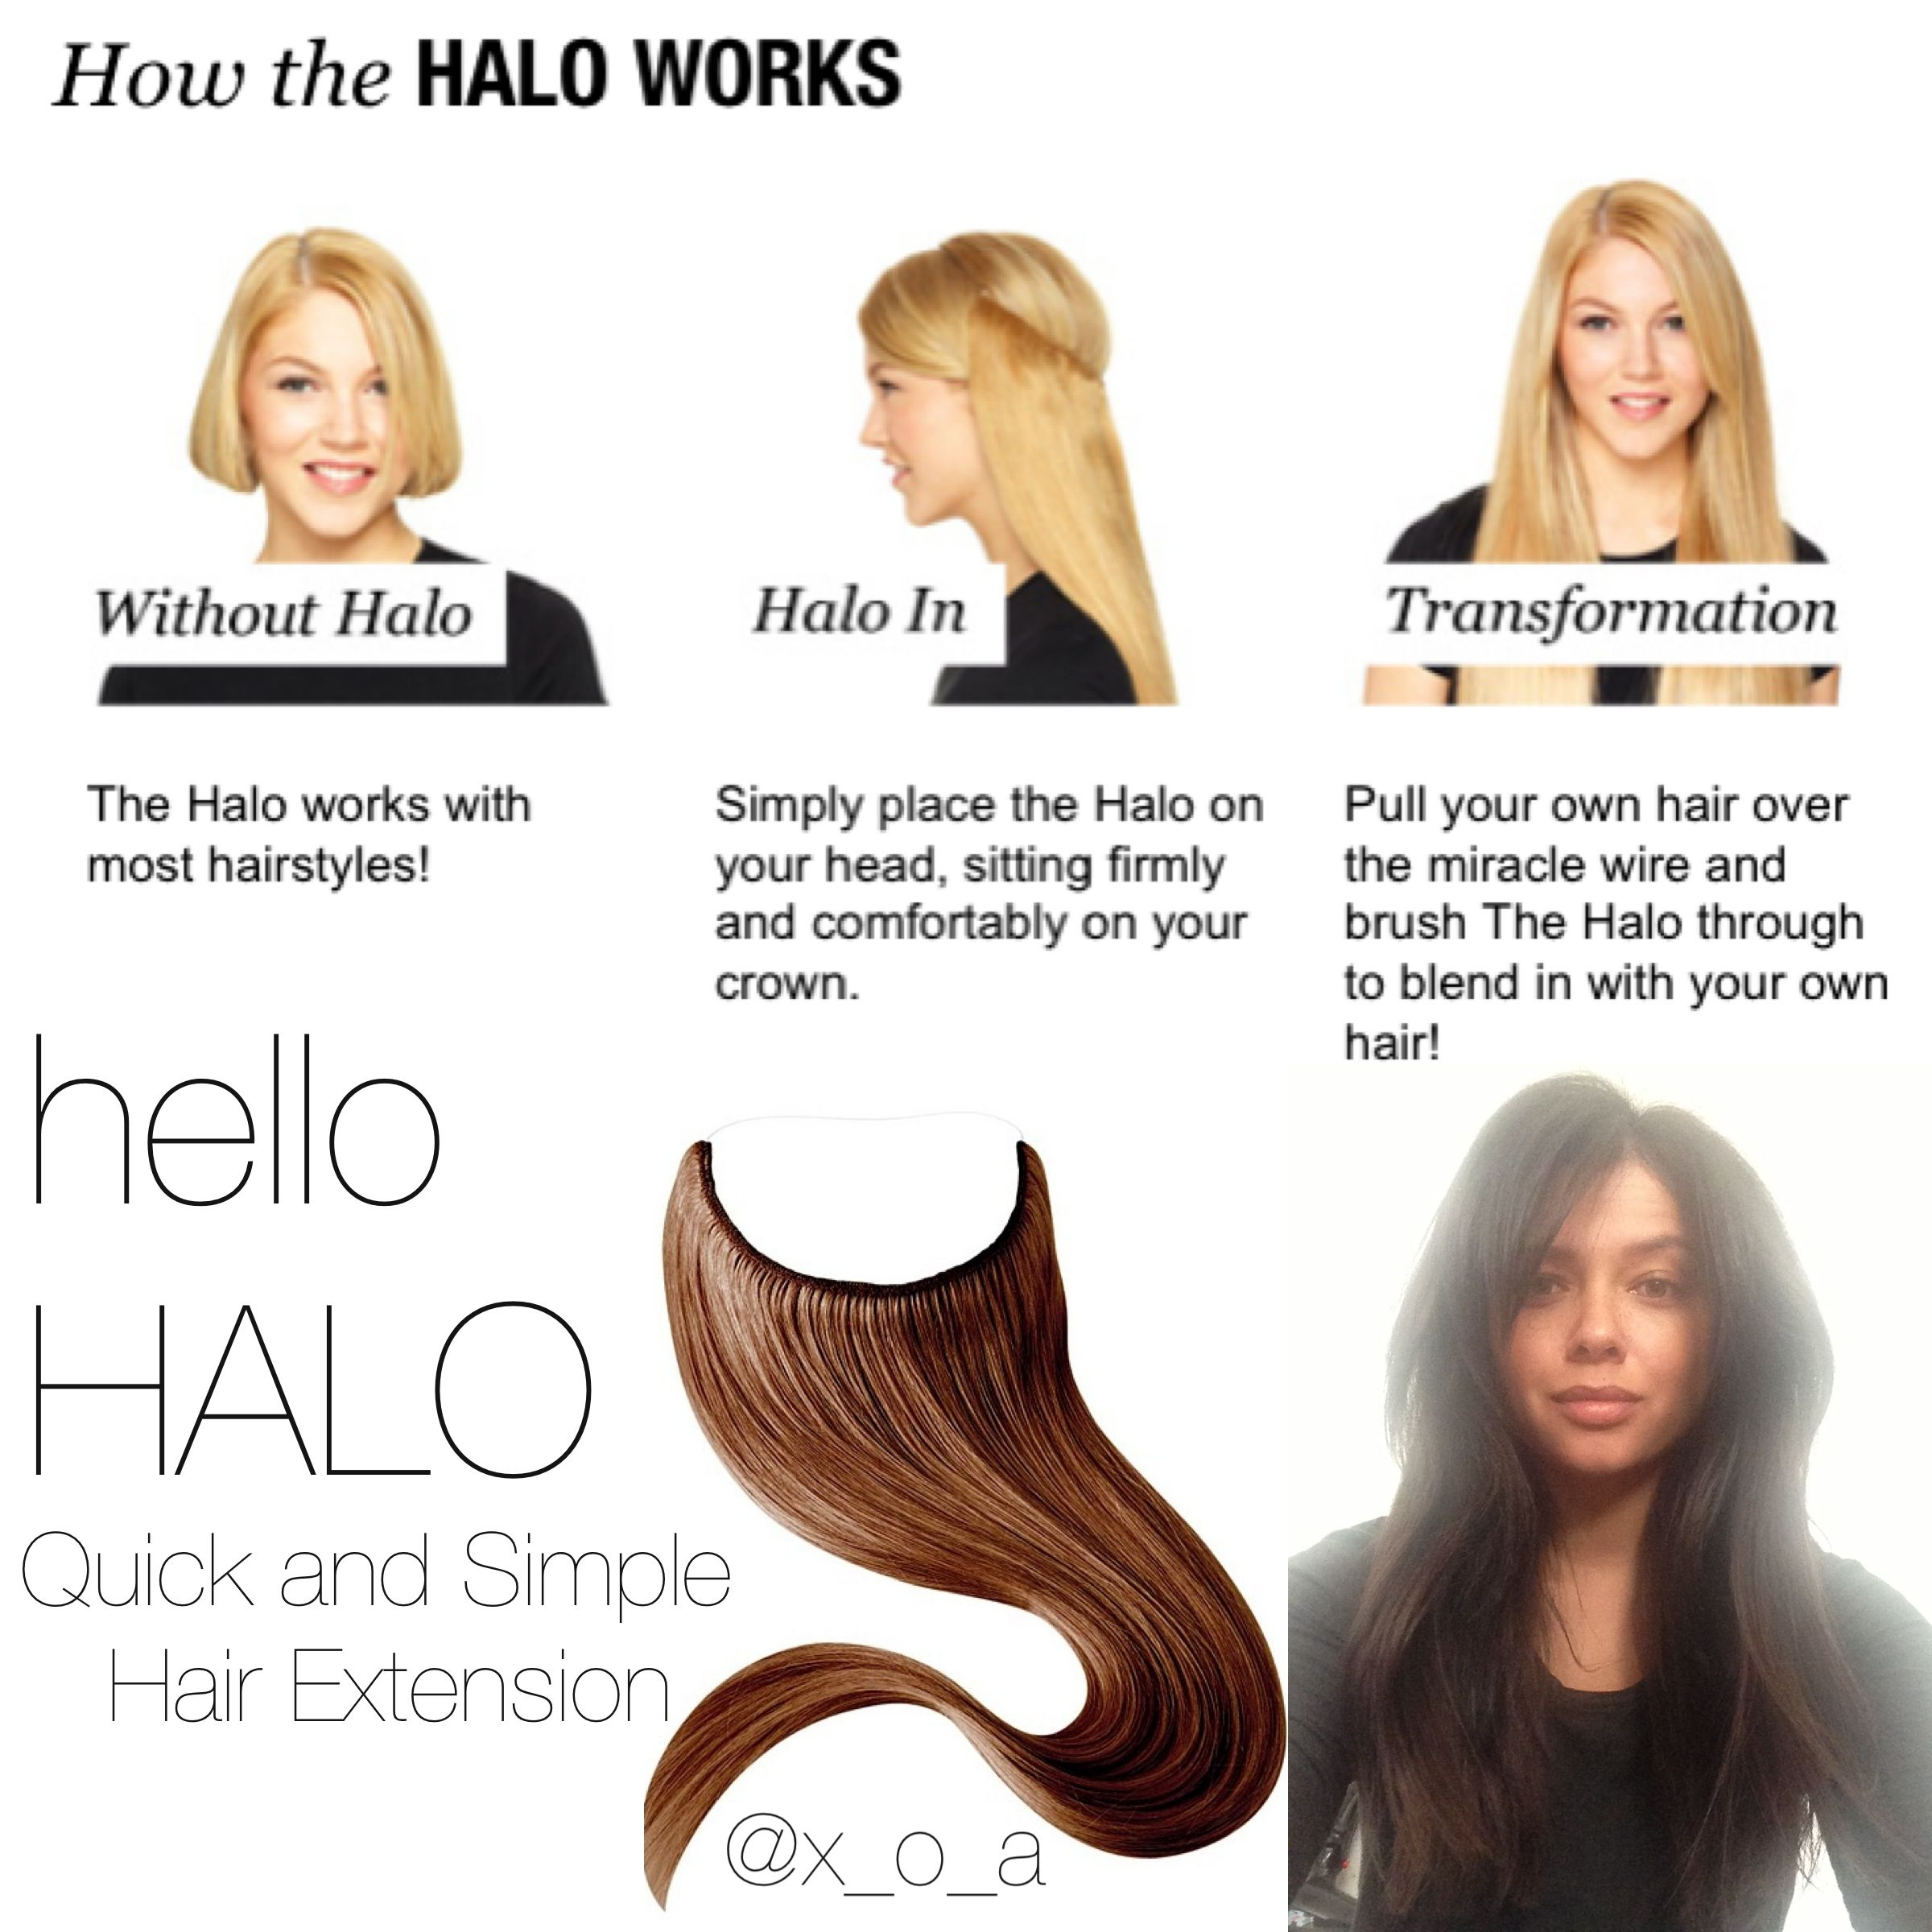 Halo style hair extensions best hairstyles 2017 ver 1 000 bilder om hair love p lockigt hr lnga halo hair extensions etsy pmusecretfo Image collections